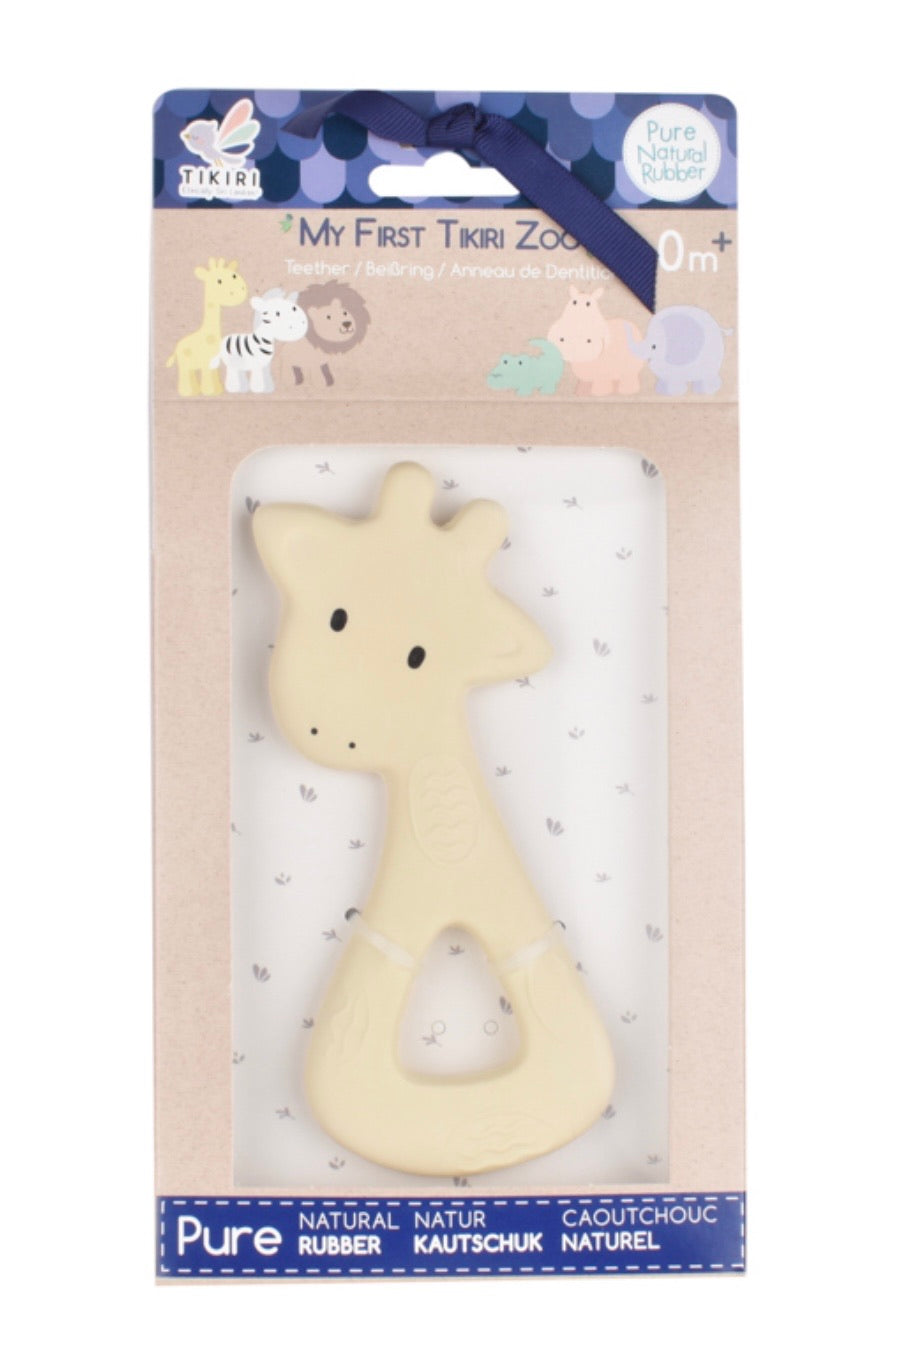 Rubber Giraffe Teether - Tikiri